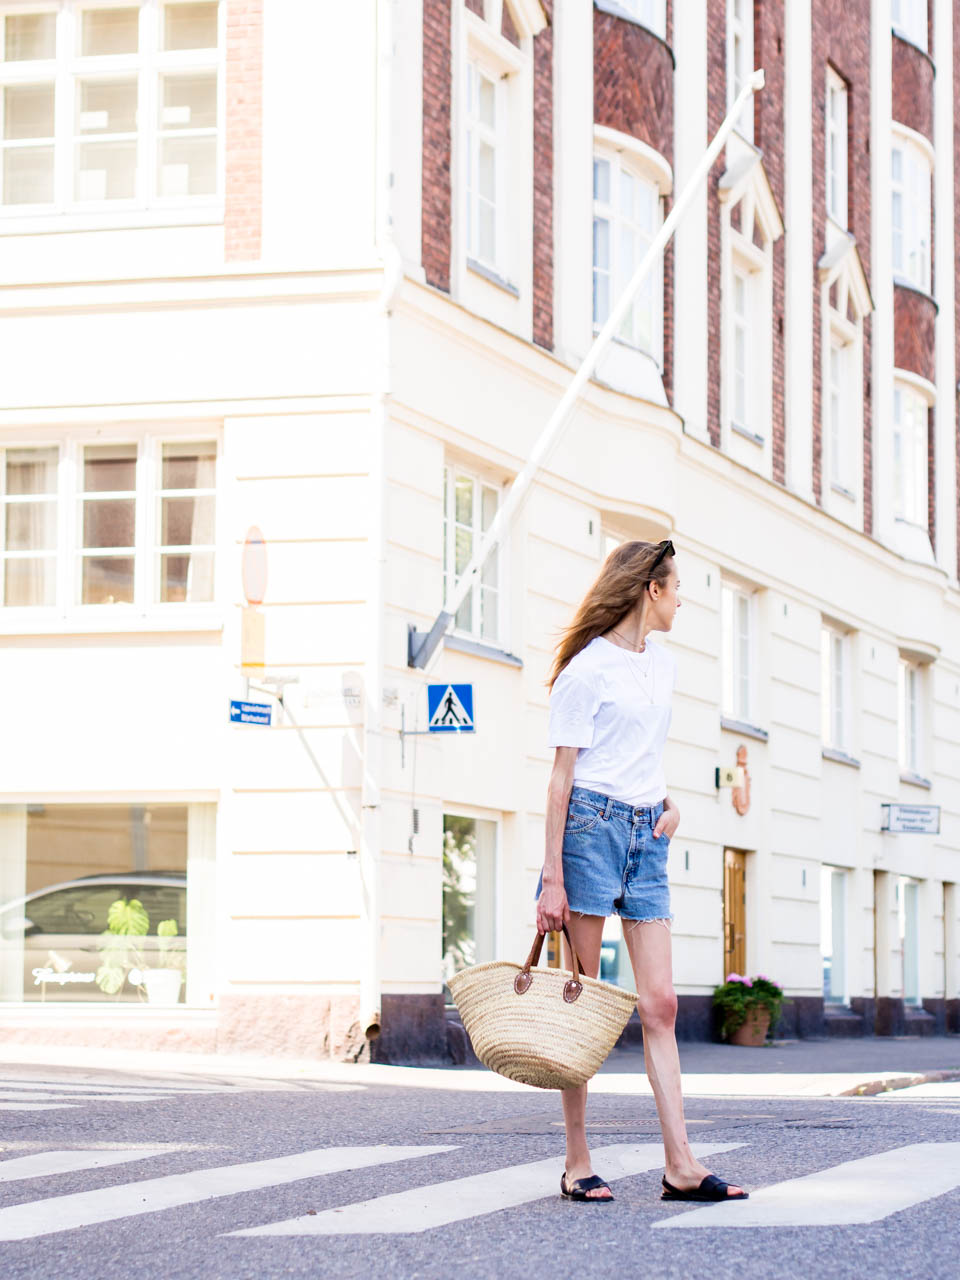 white-tshirt-vintage-levis-denim-shorts-outfit-inspiration-fashion-blogger-streetstyle-scandinavia